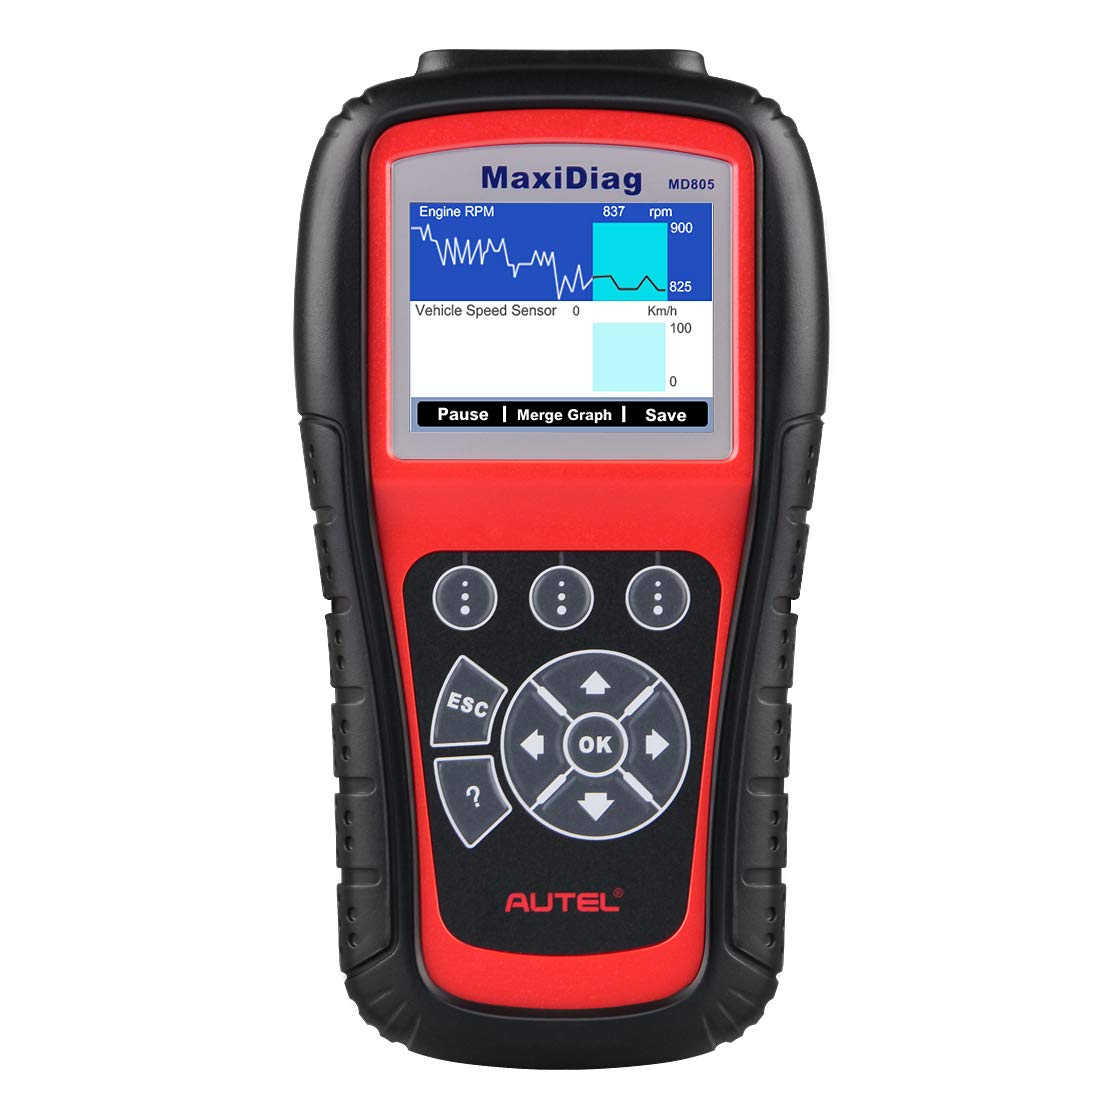 Autel MaxiDiag MD805 OBD2 Scanner Full System Diagnostic Tool with Engine, Transmission, ABS, Airbag, EPB, Oil Reset -Advanced Version of MD802 by Autel (Image #1)